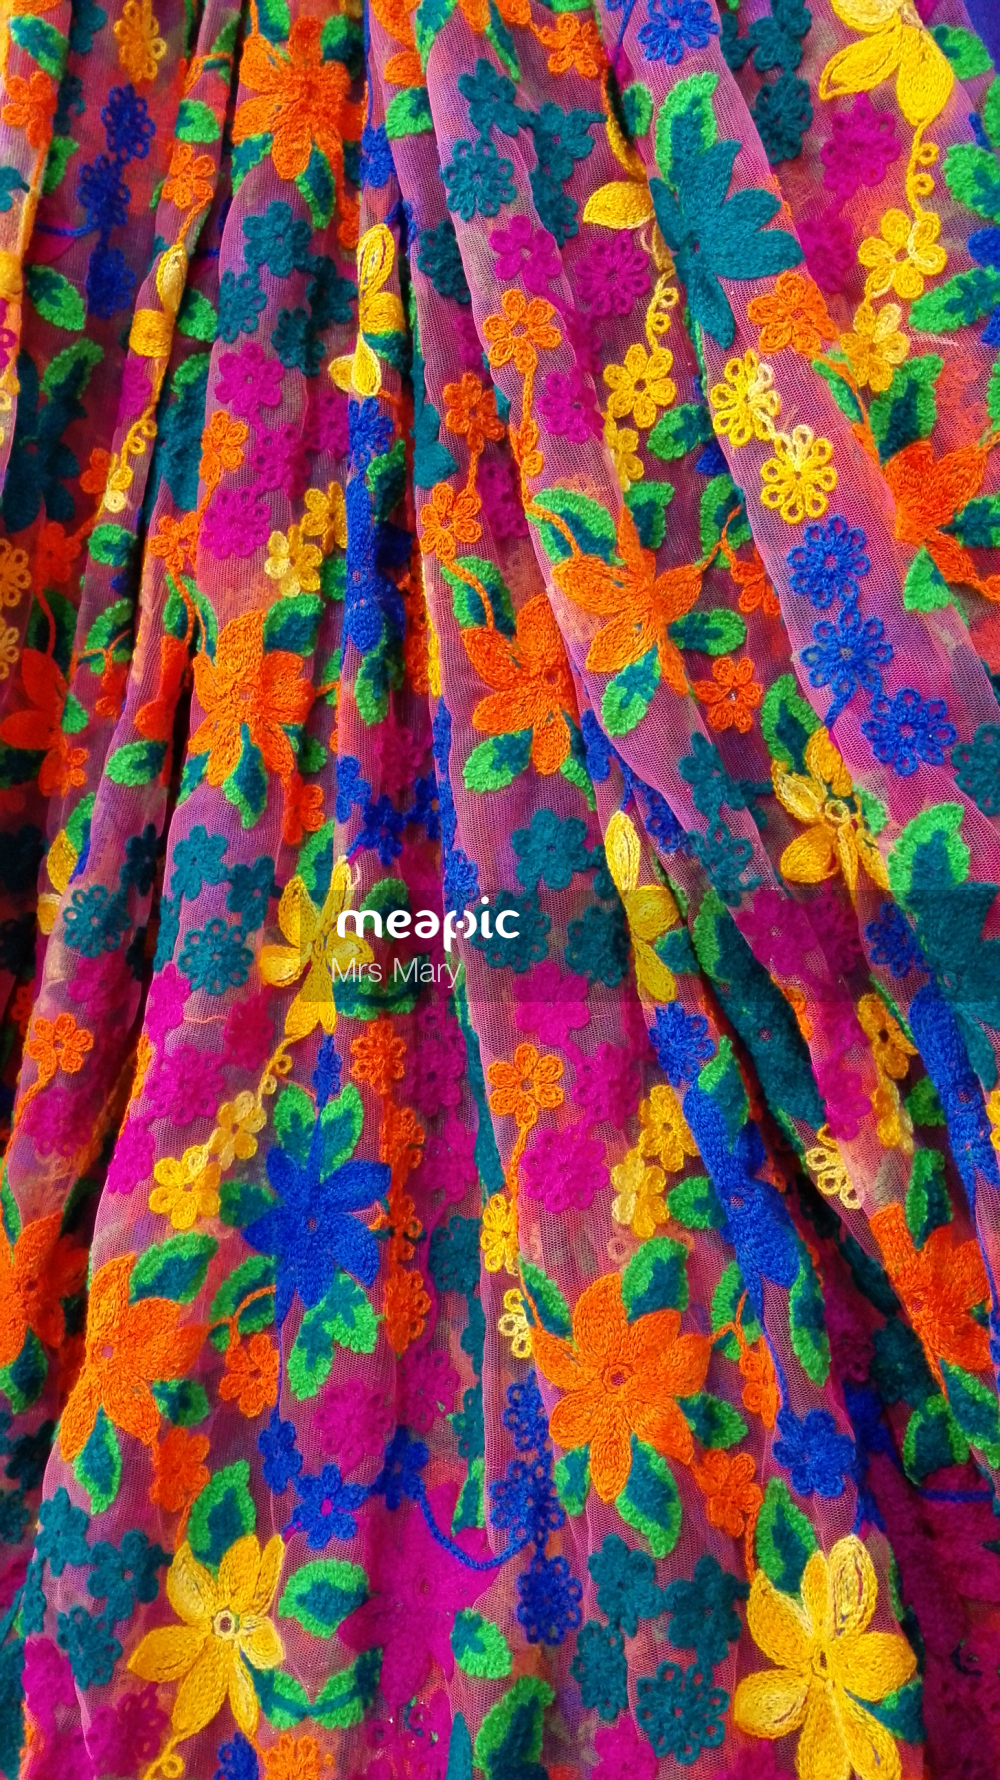 Colorful Kite Stock Photo · Meapic